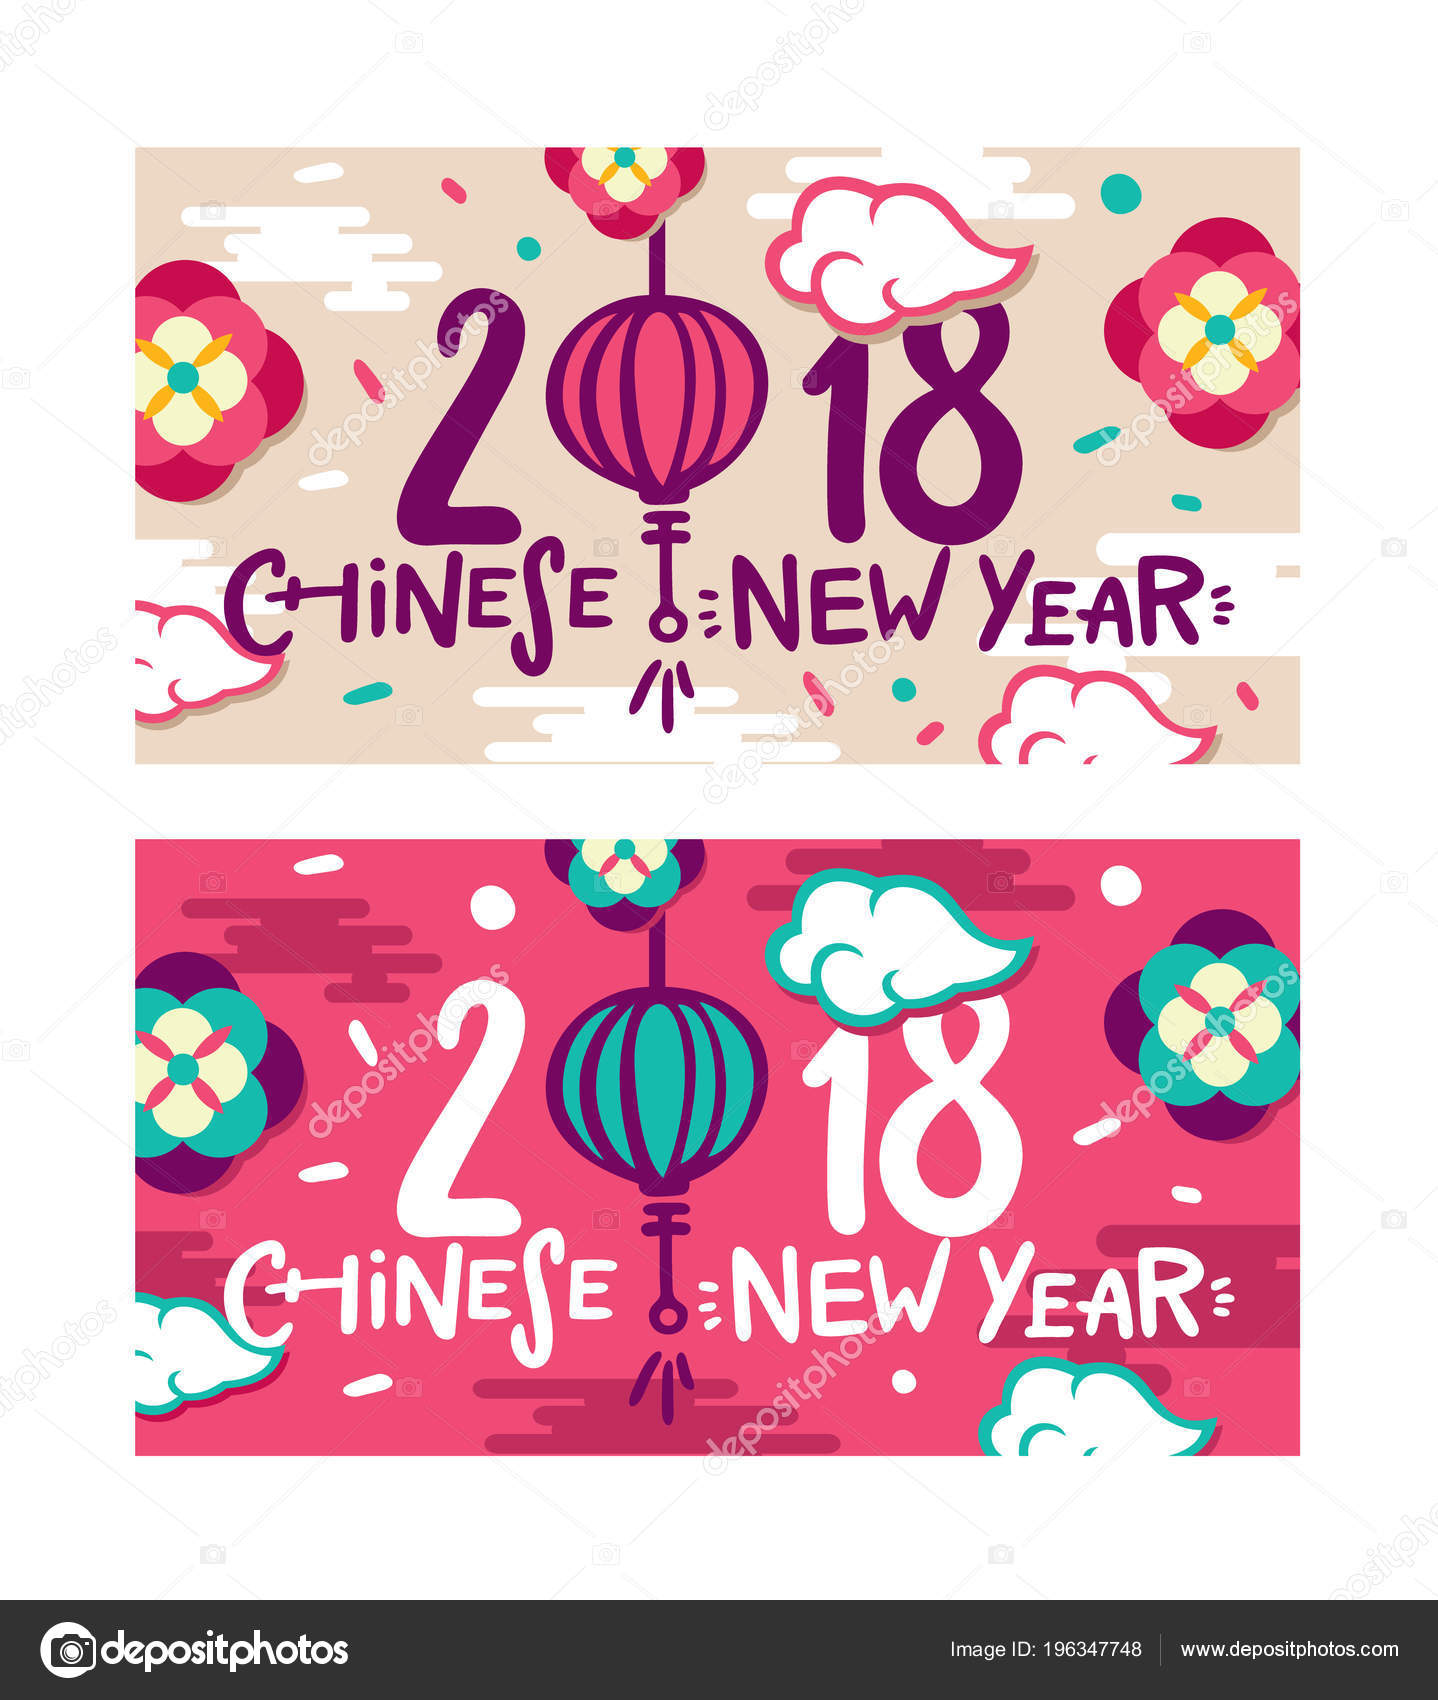 2018 chinese new year greeting card two sides poster flyer or invitation design with paper cut sakura flowers vector illustration hieroglyphs dog